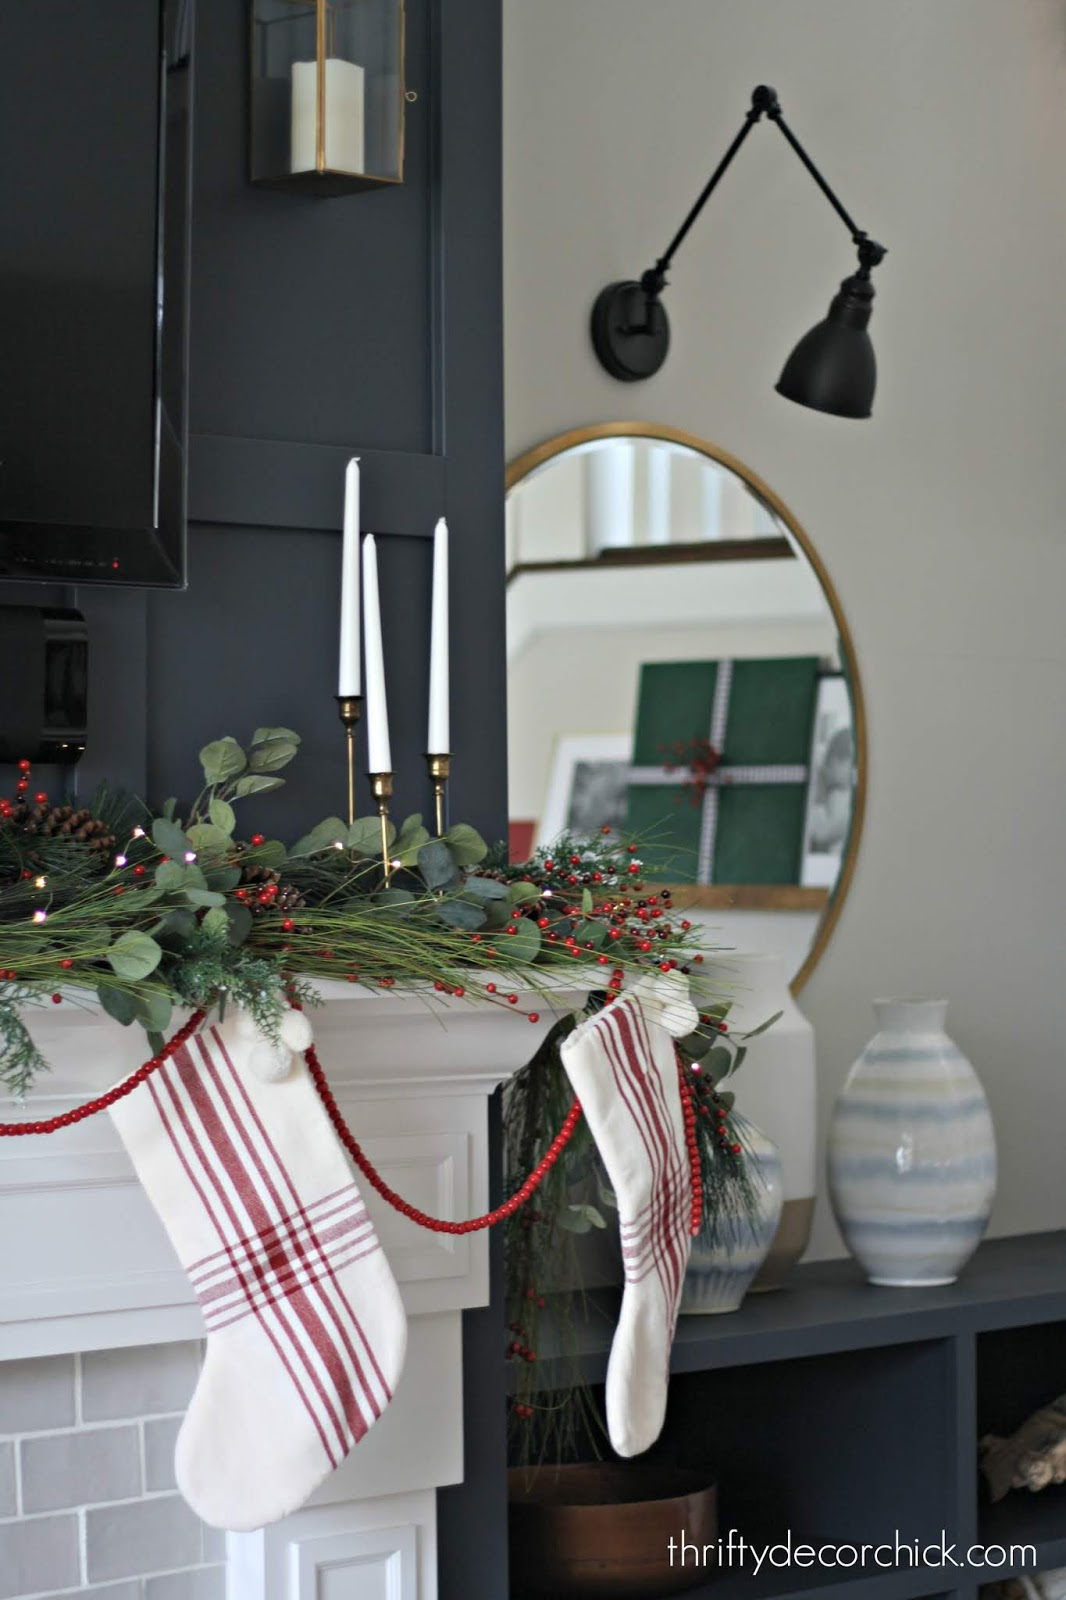 Using garland on Christmas fireplace